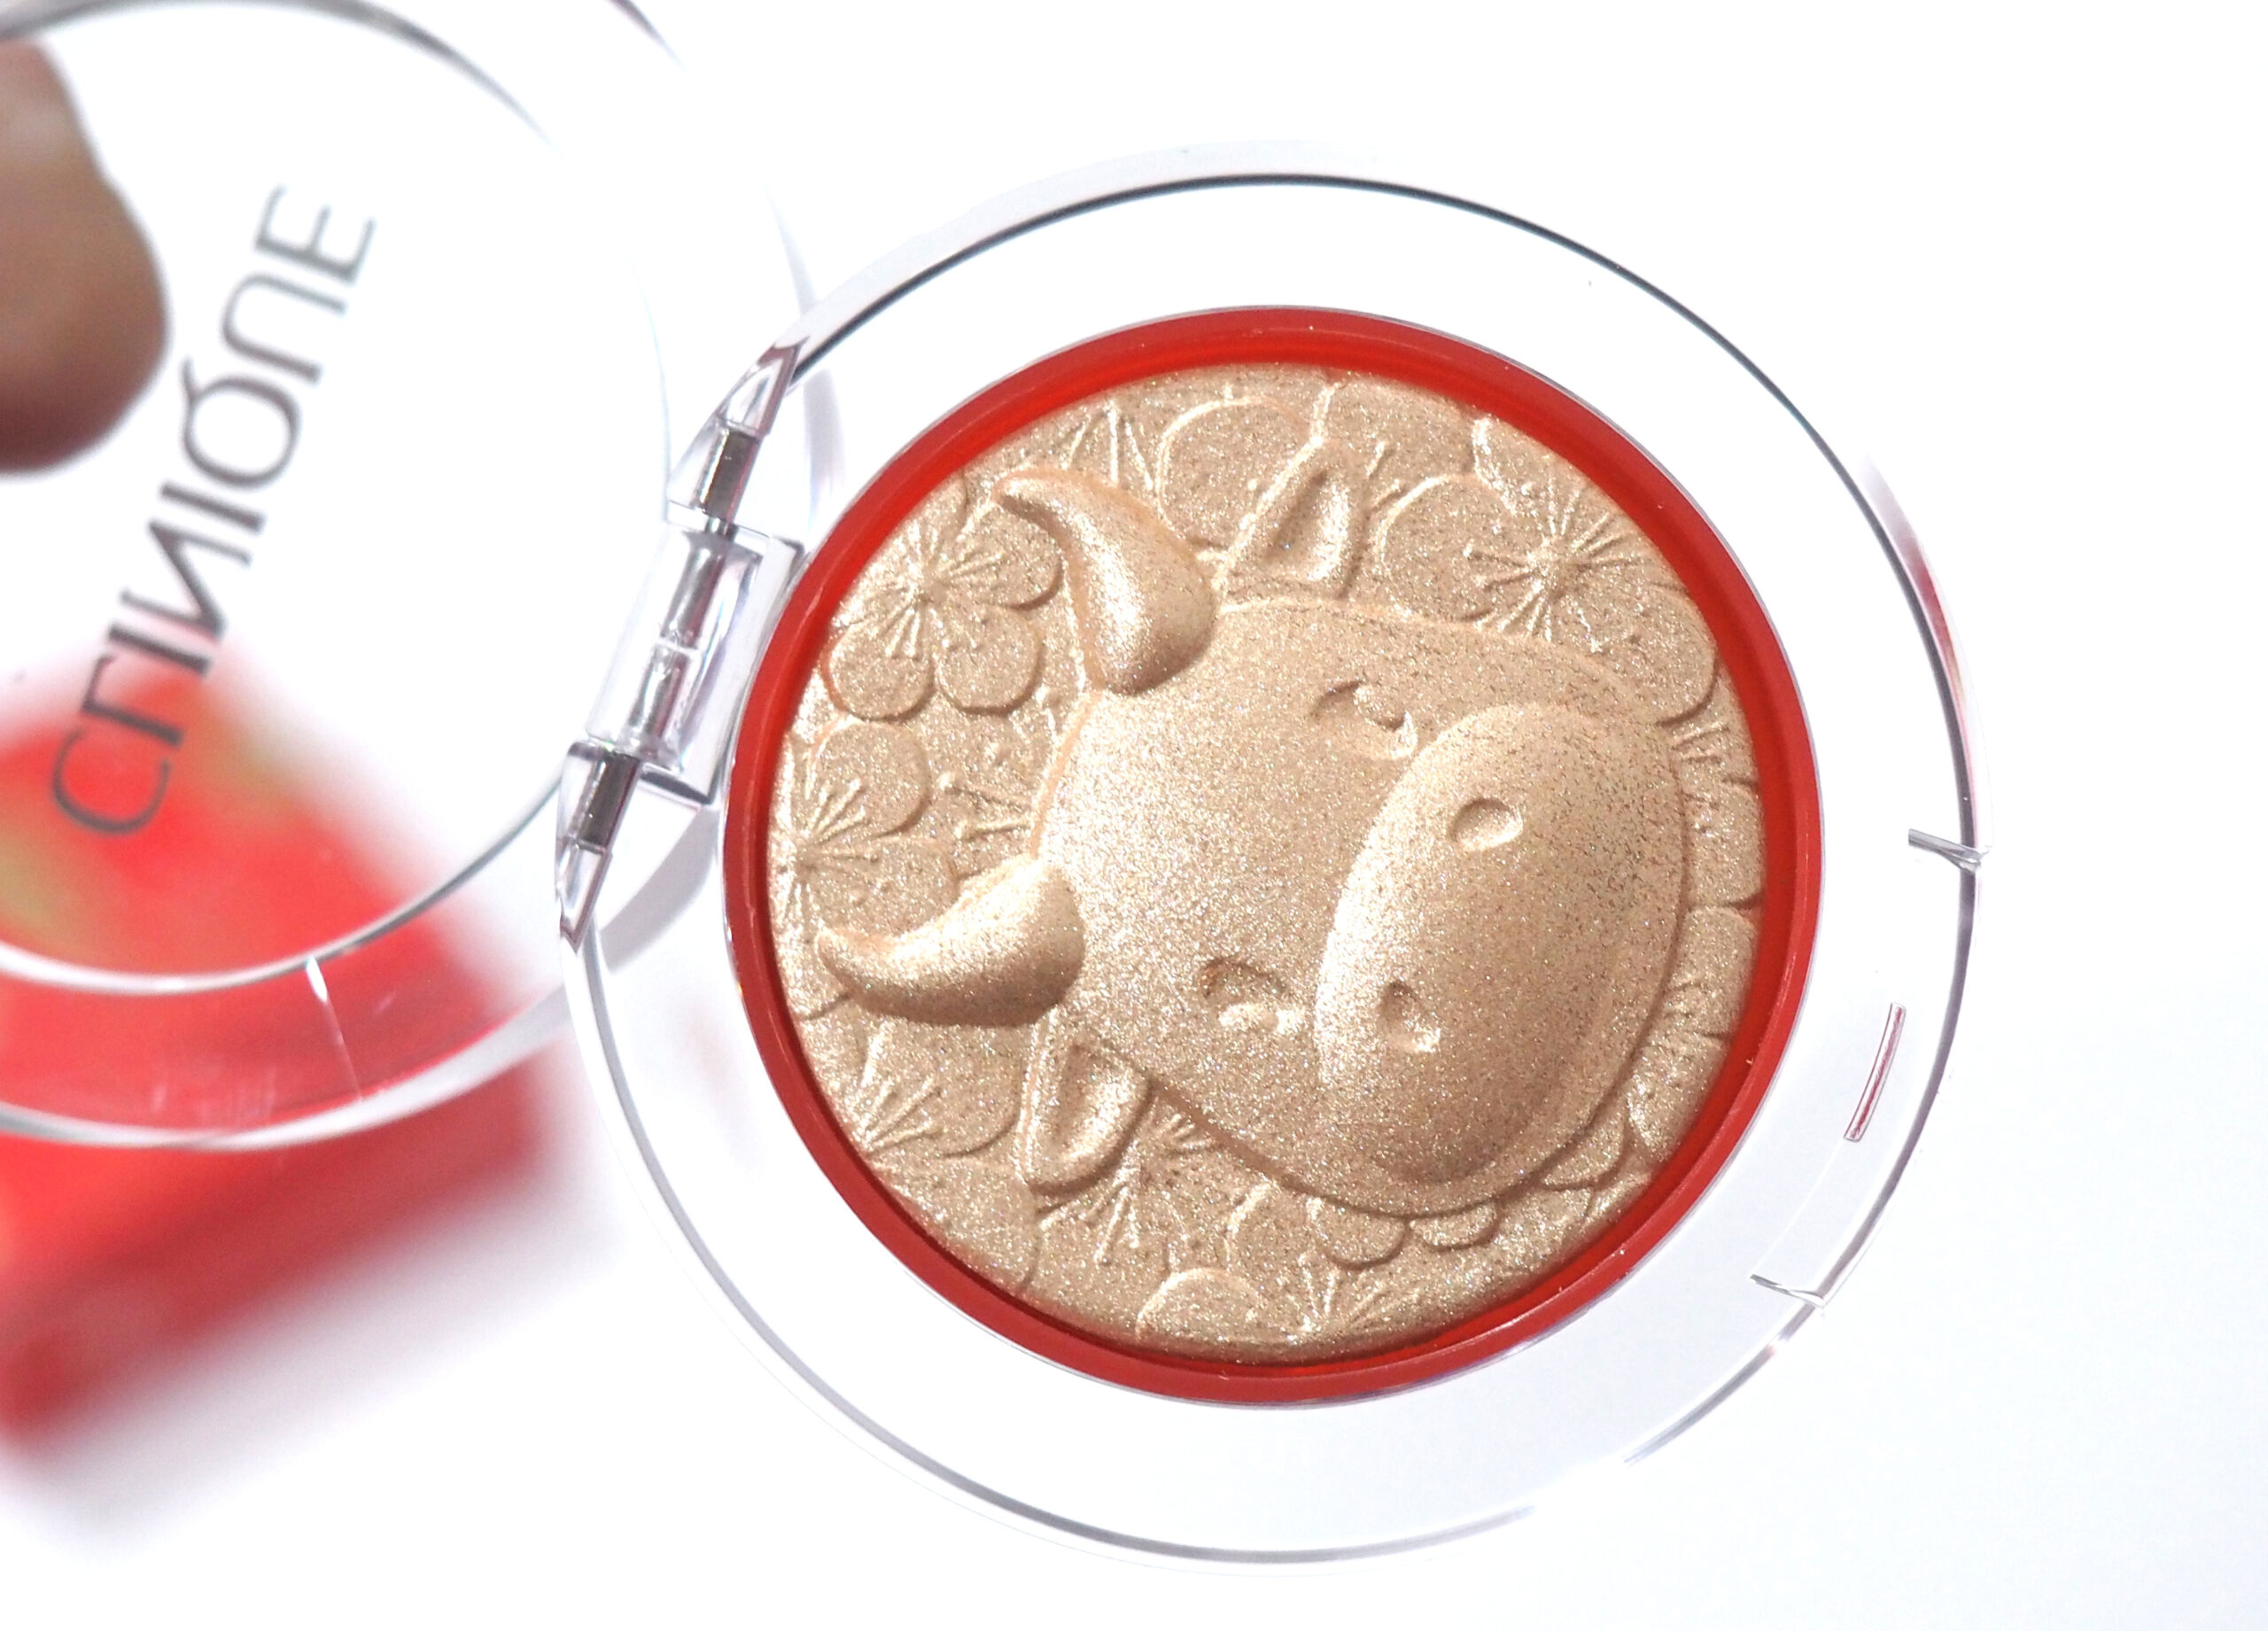 Clinique Gold Celebration Pop Ox Lunar New Year Highlighter Review / Swatches